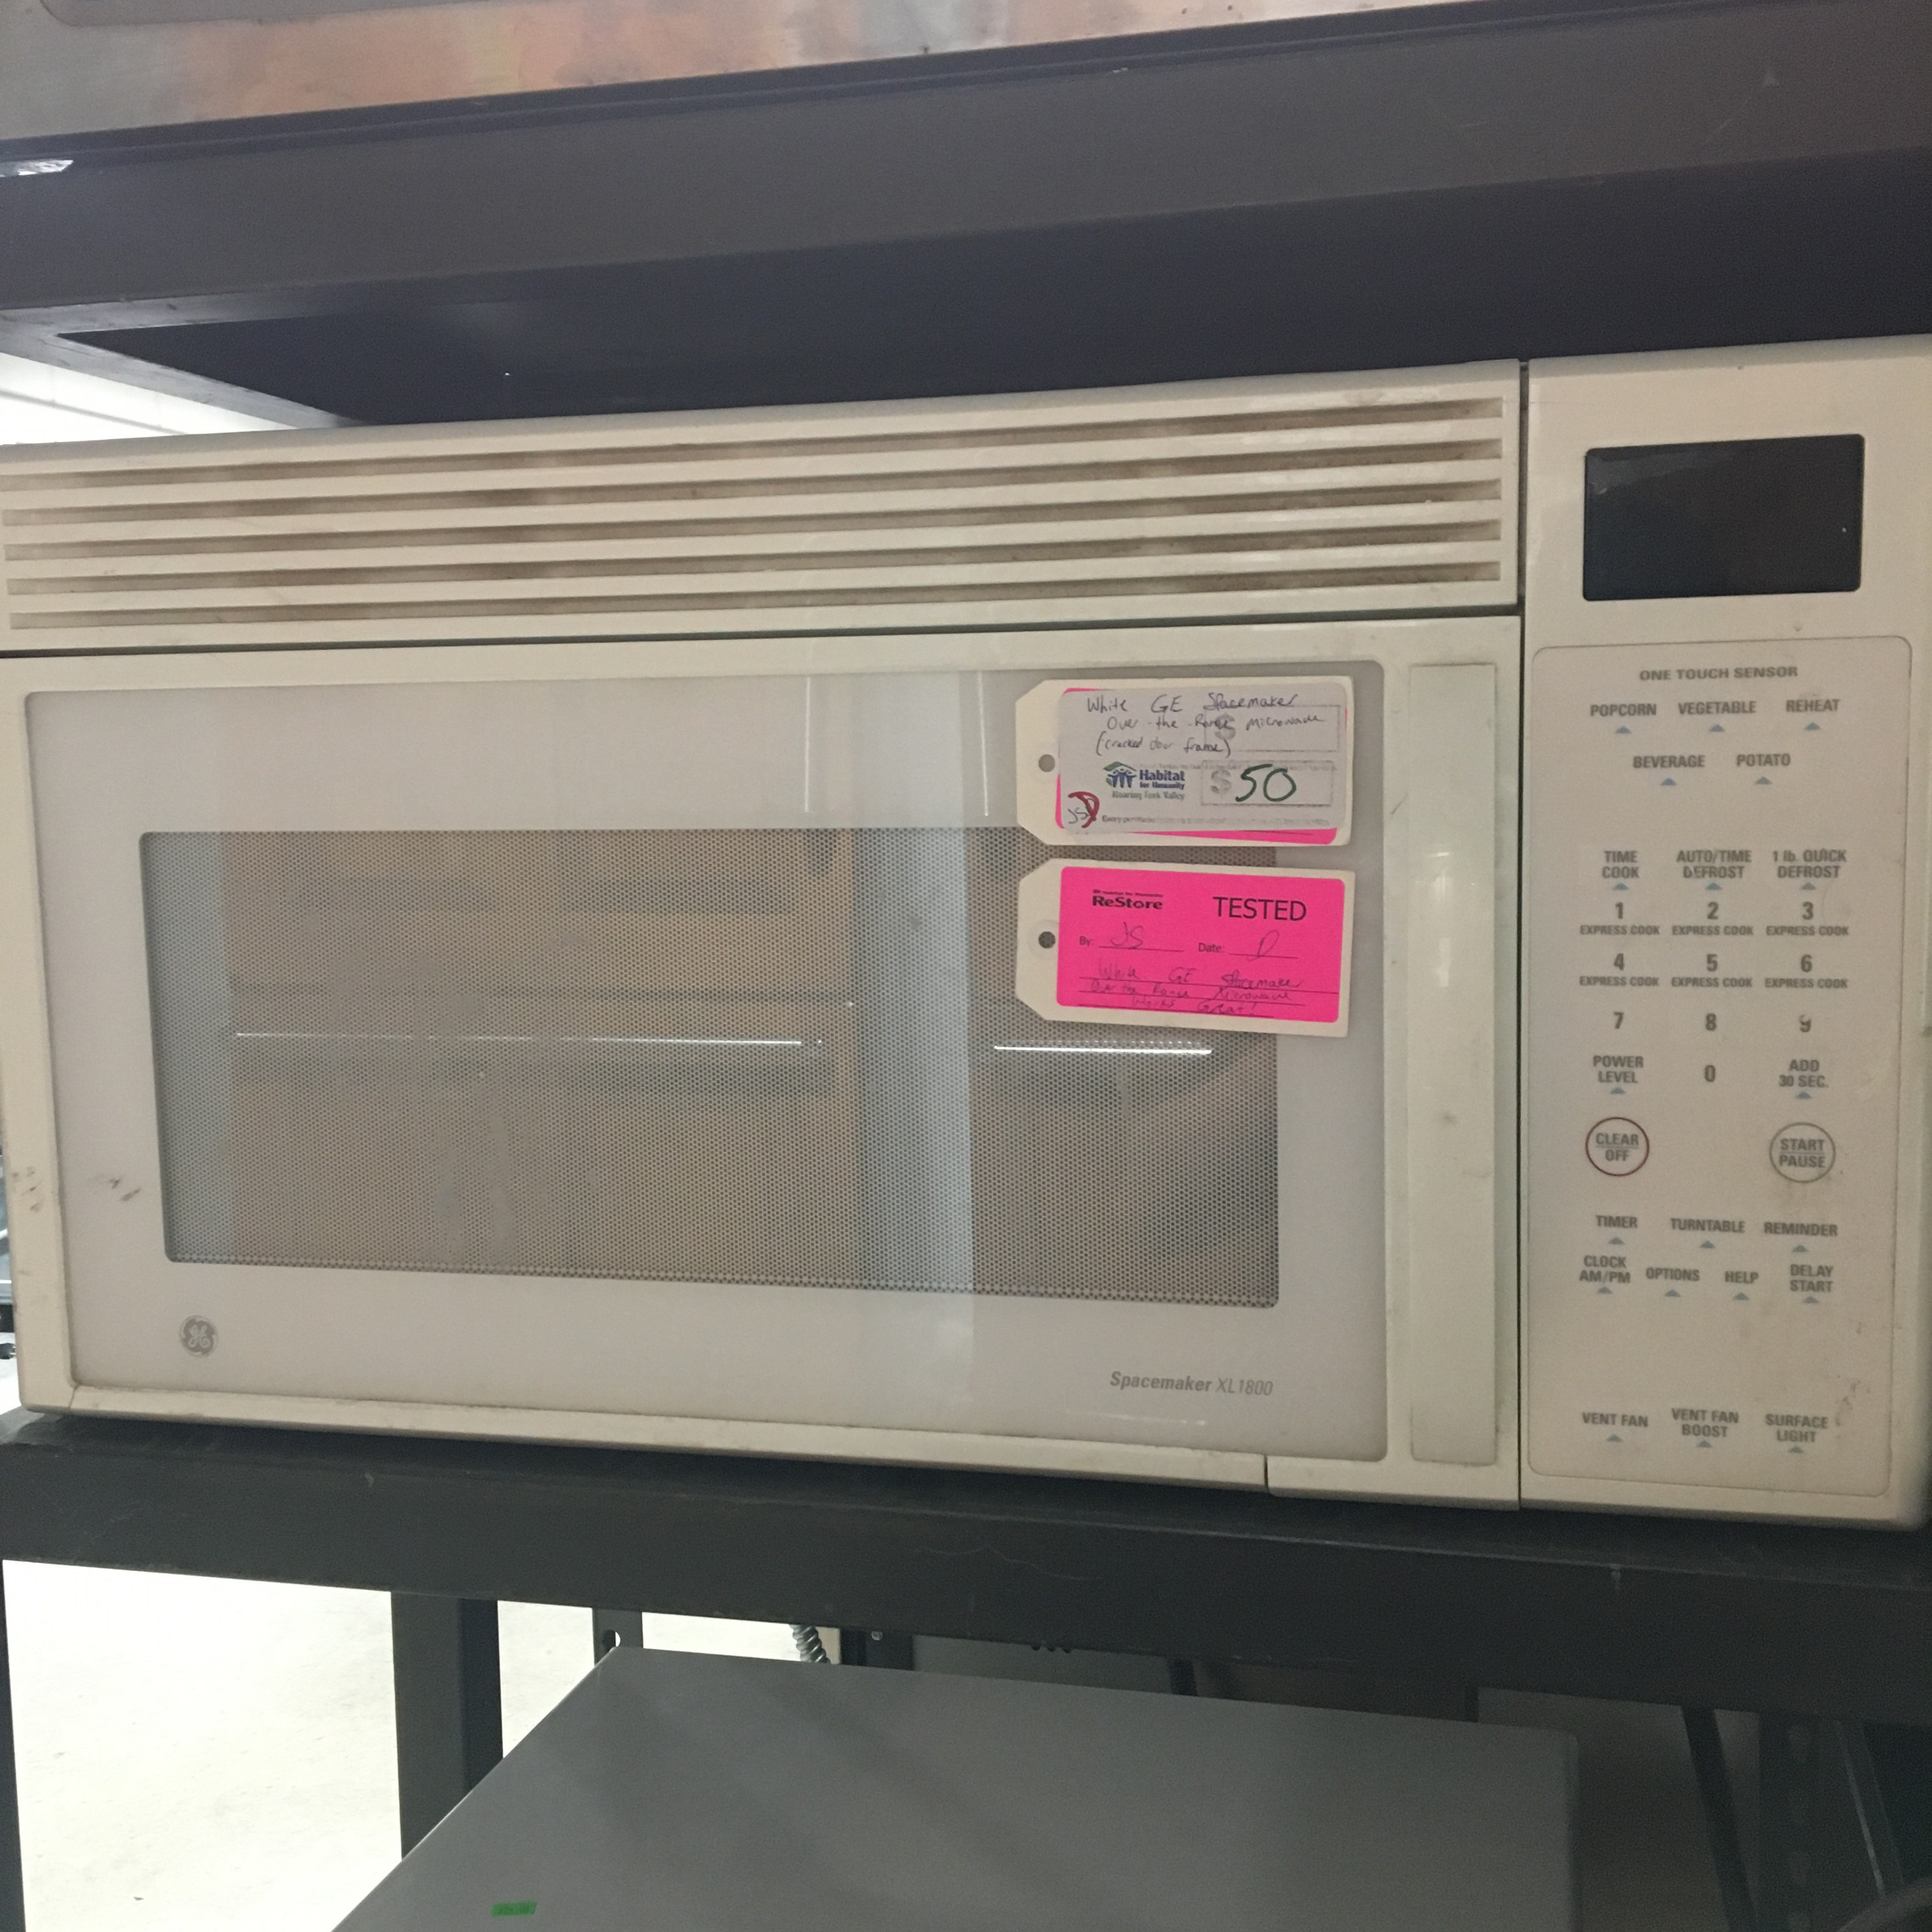 G.E. Spacemaker White Over the Range Microwave